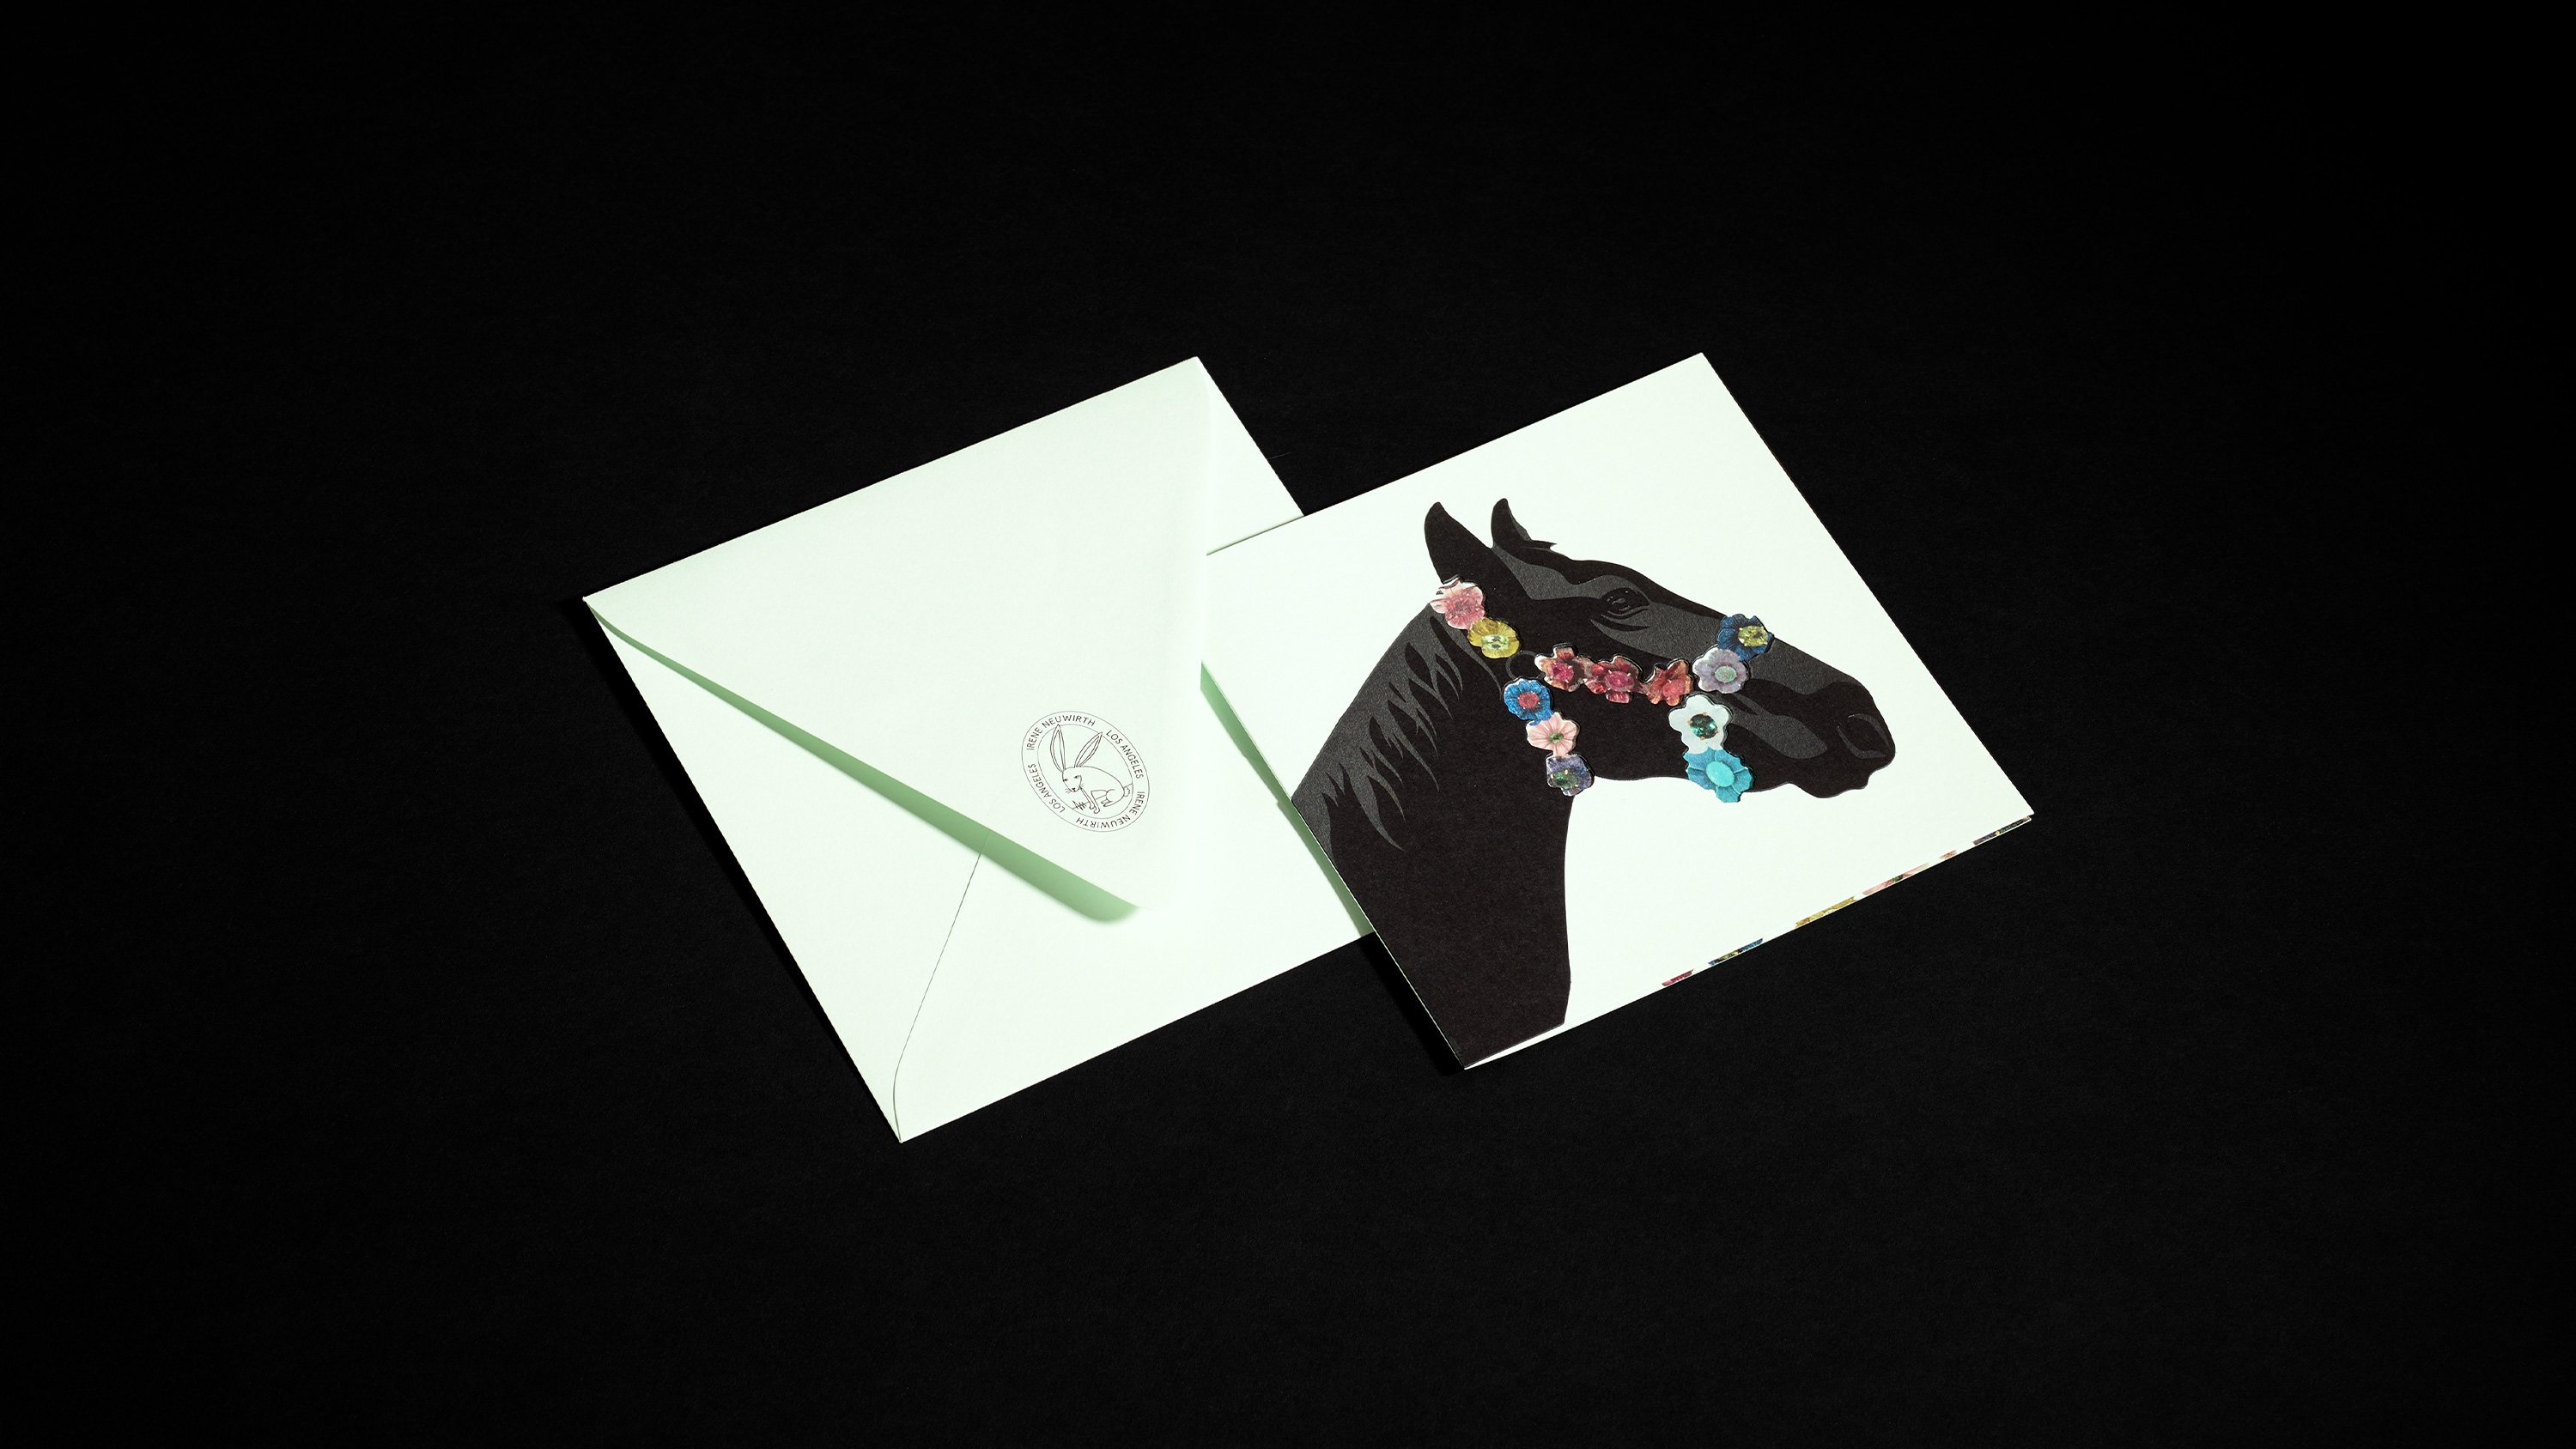 Irene Neuwirth card with illustrated black horse wearing jeweled halter. Art direction and print design by RoAndCo